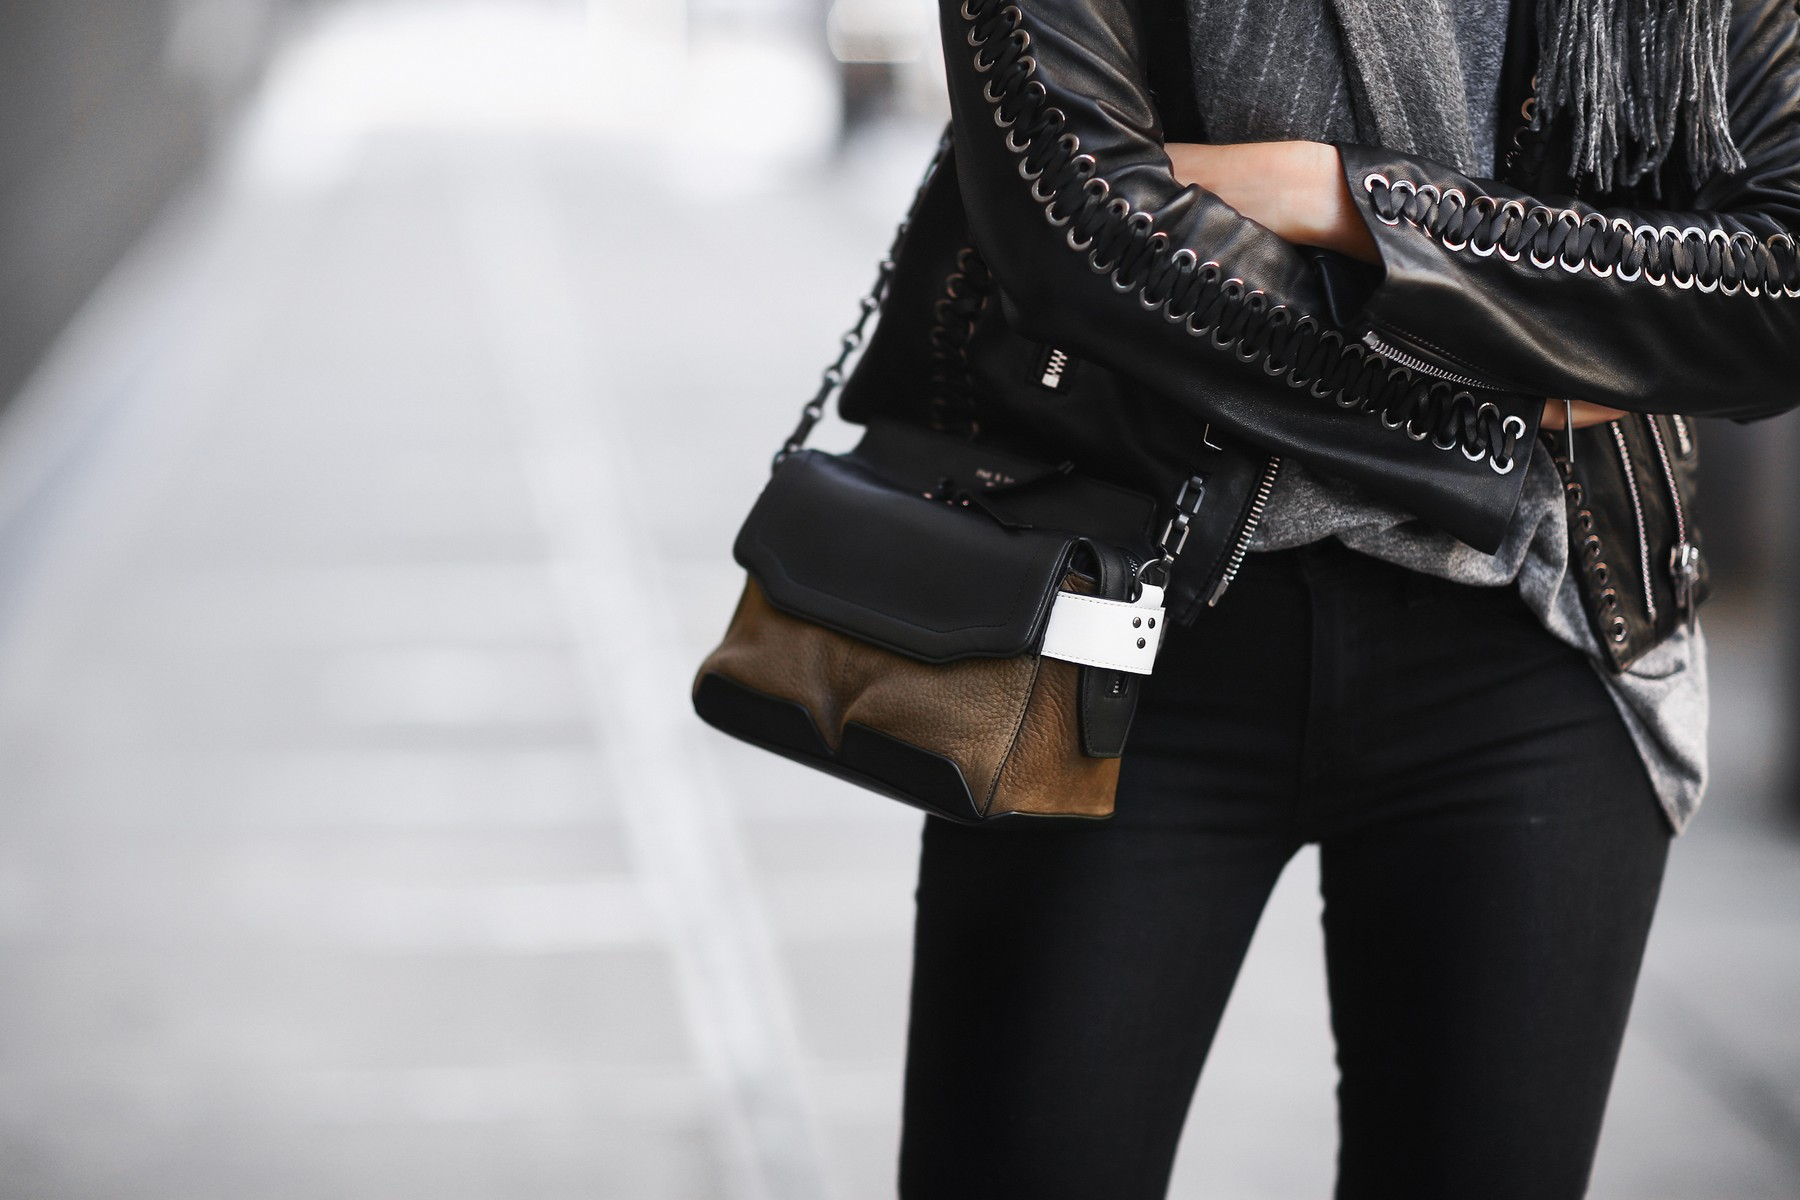 black leather jacket and satchel